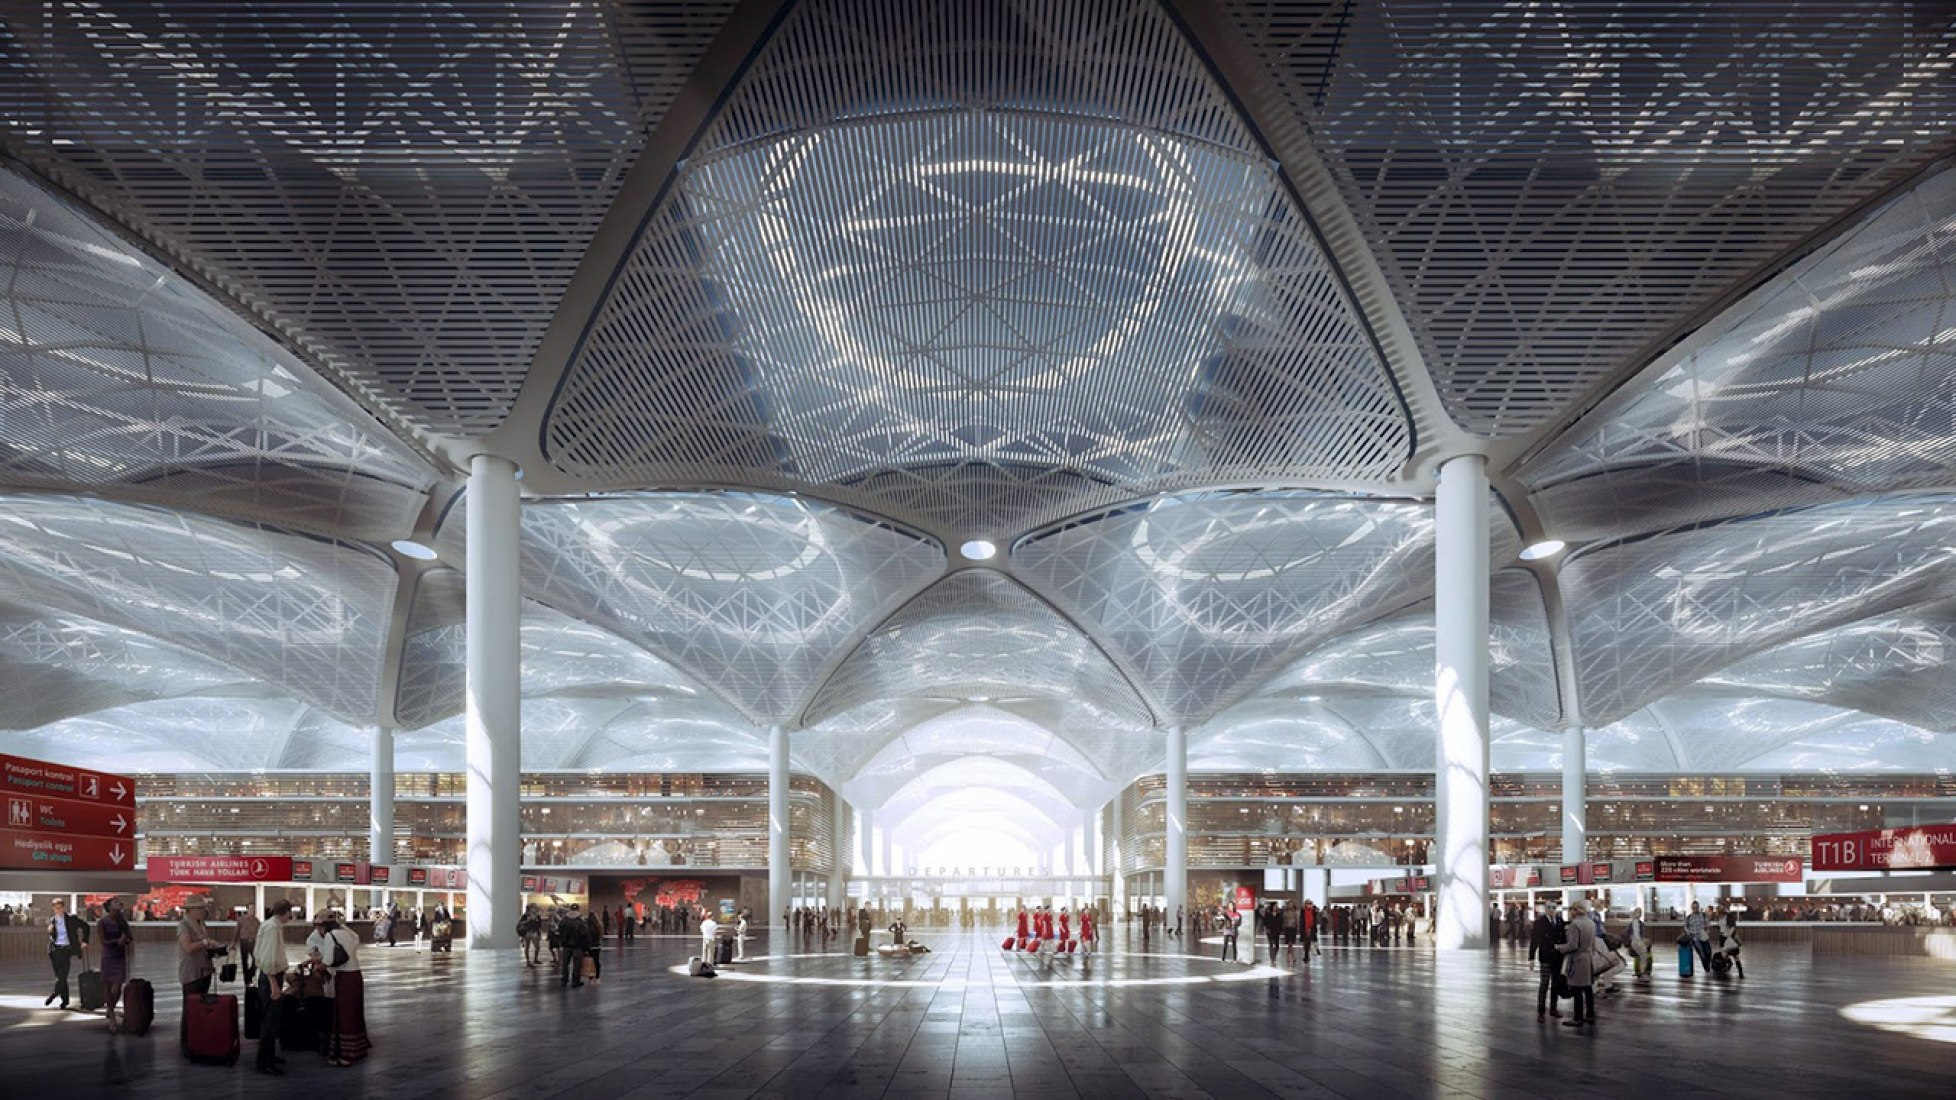 Istanbul Grand Airport by Haptic, Grimshaw and Nordic Office of Architecture. Images © MIR